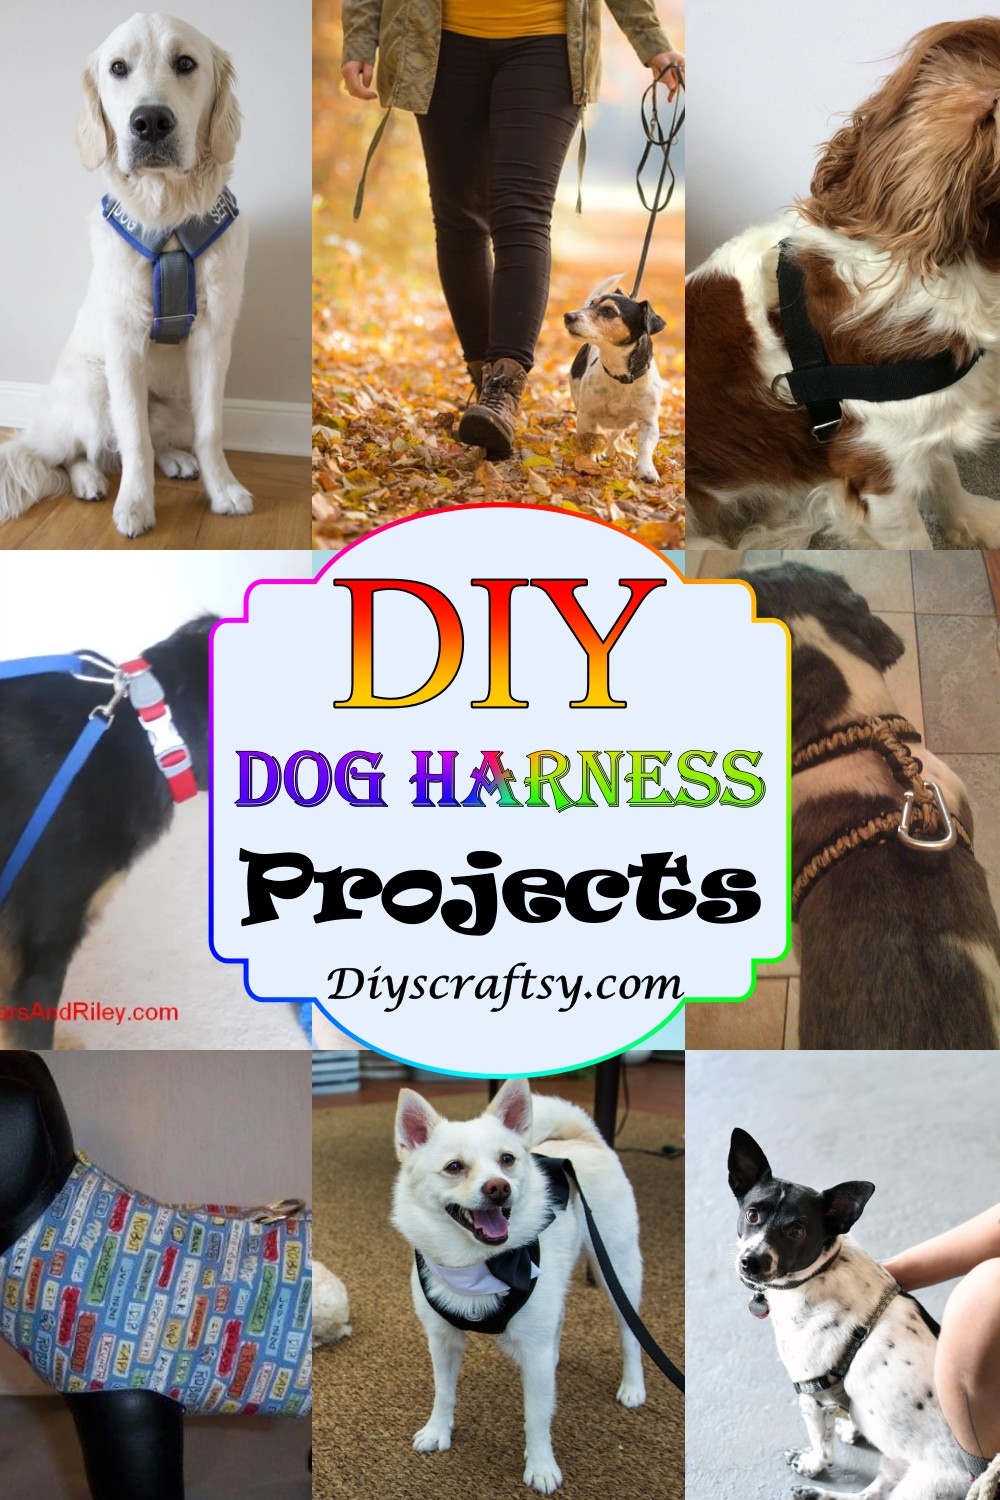 DIY Dog Harness Projects 1